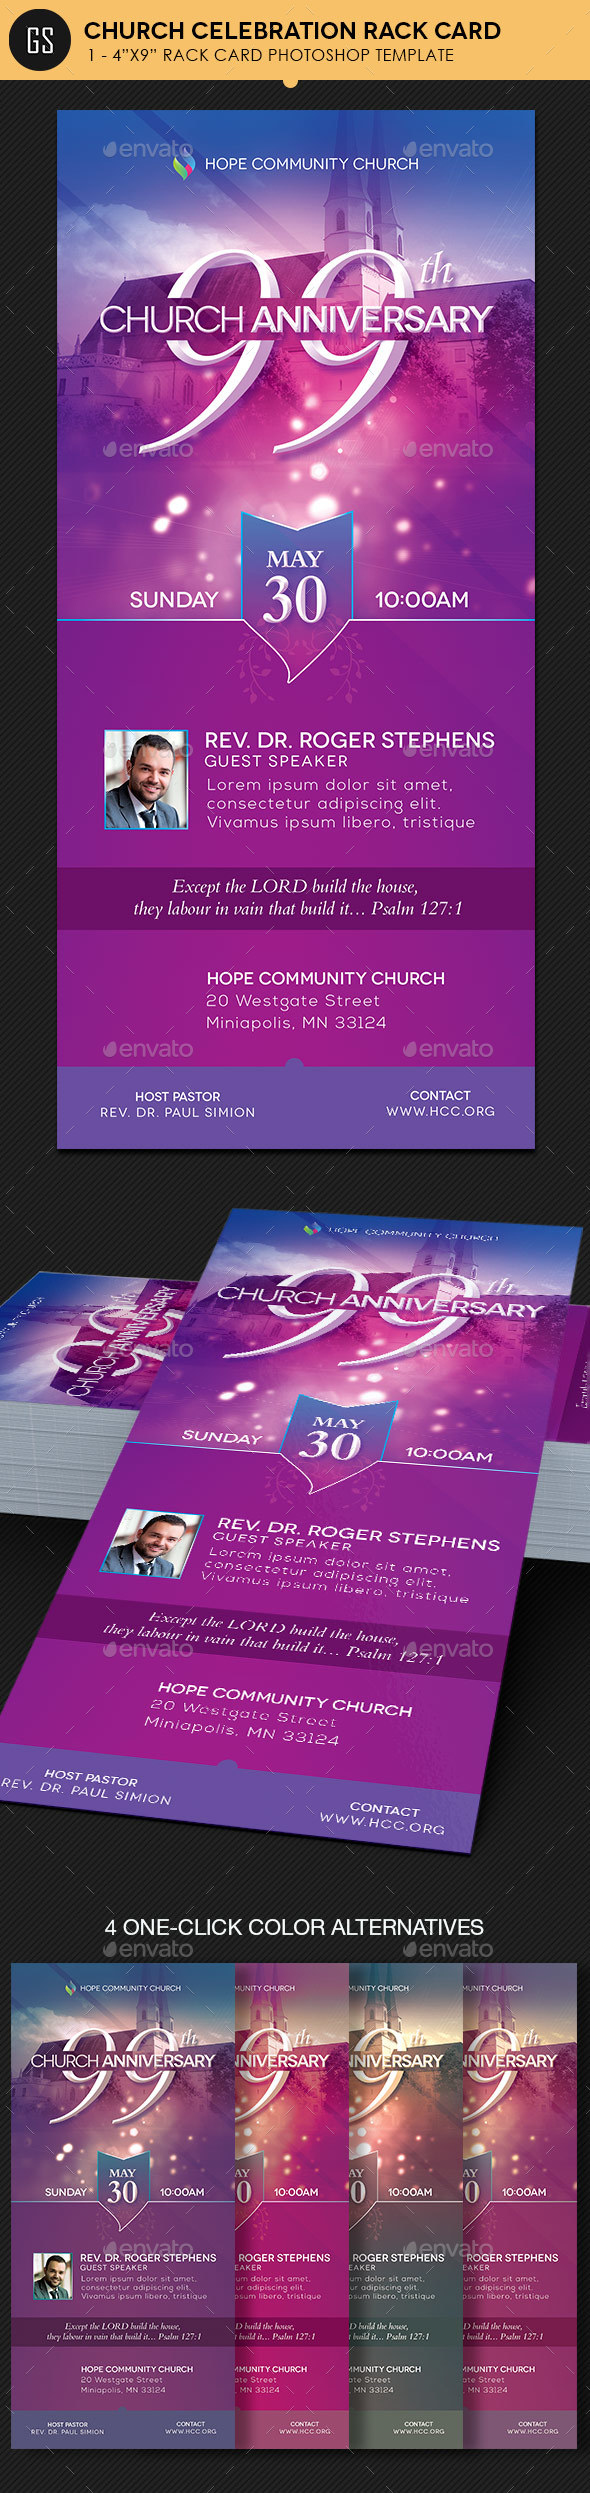 Church Celebration Rack Card Photoshop - Church Flyers